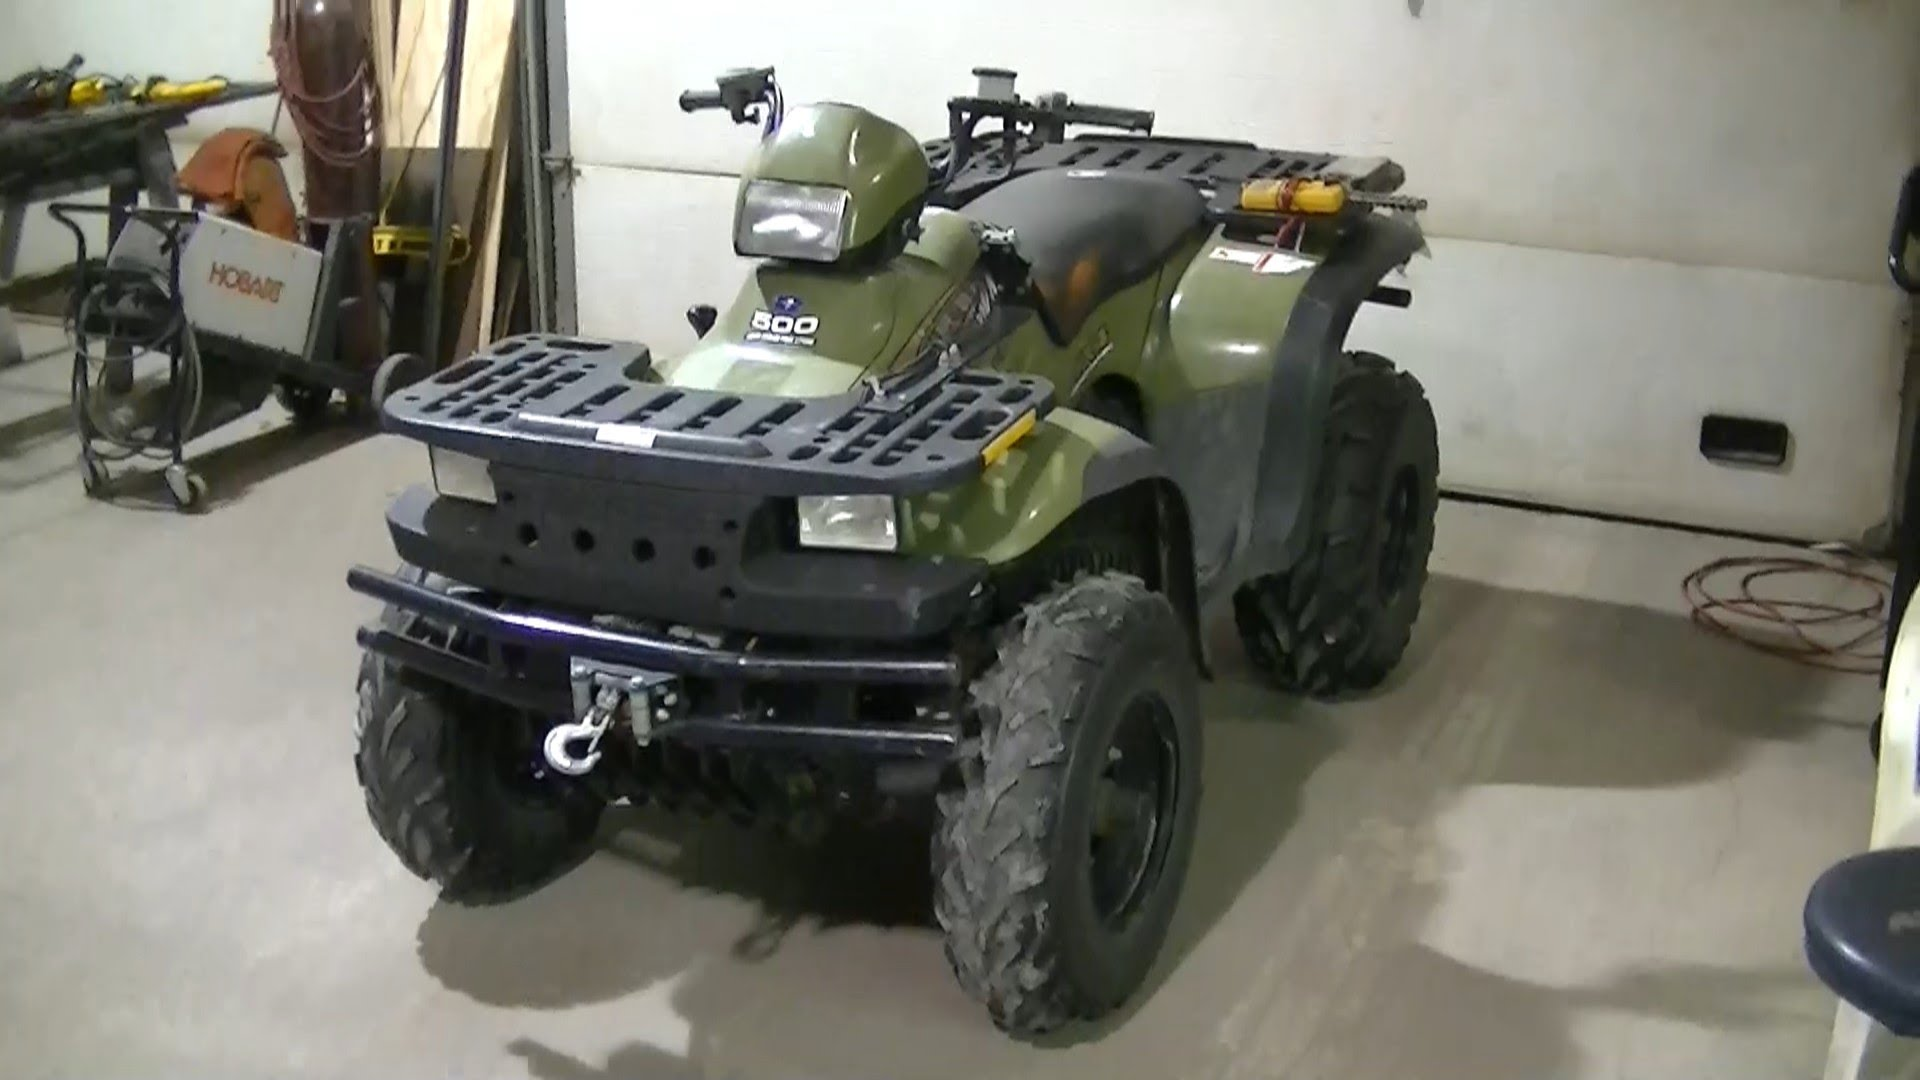 Polaris Sportsman 400 2004 images #174449